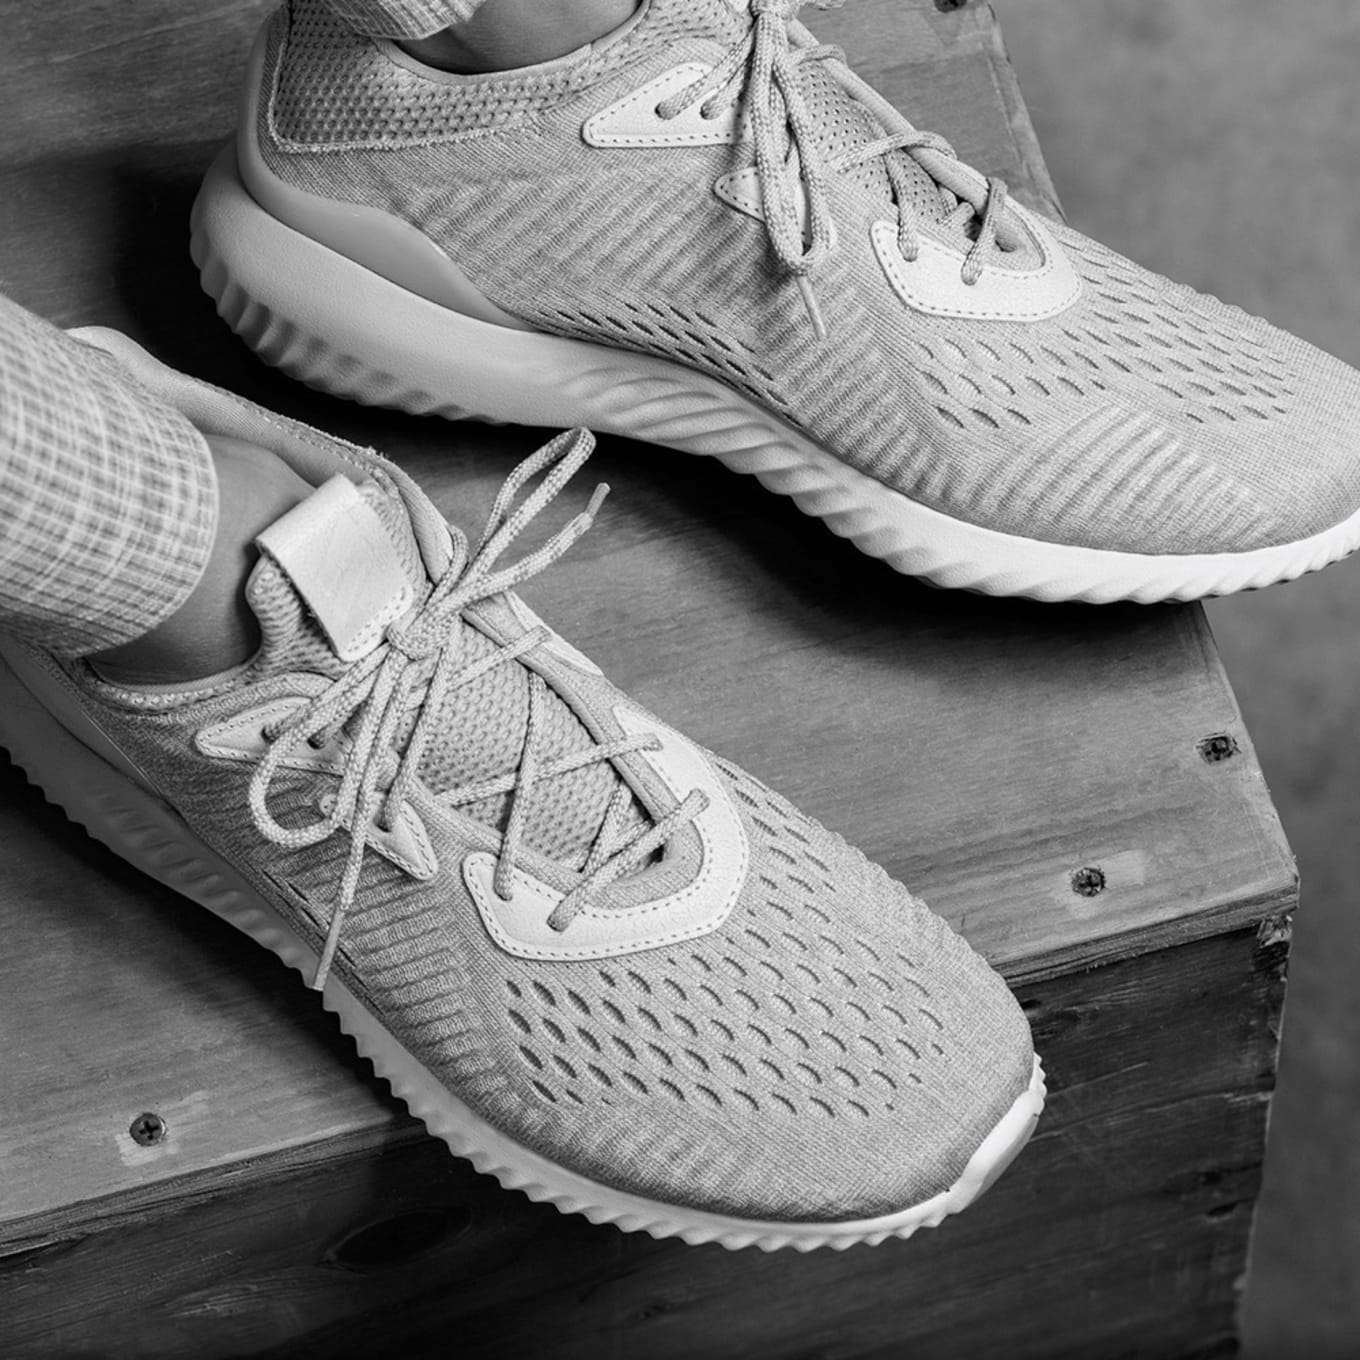 f169666743501 Adidas Unveils Another Collab With Reigning Champ. Featuring the Pure Boost  and Alpha Bounce.